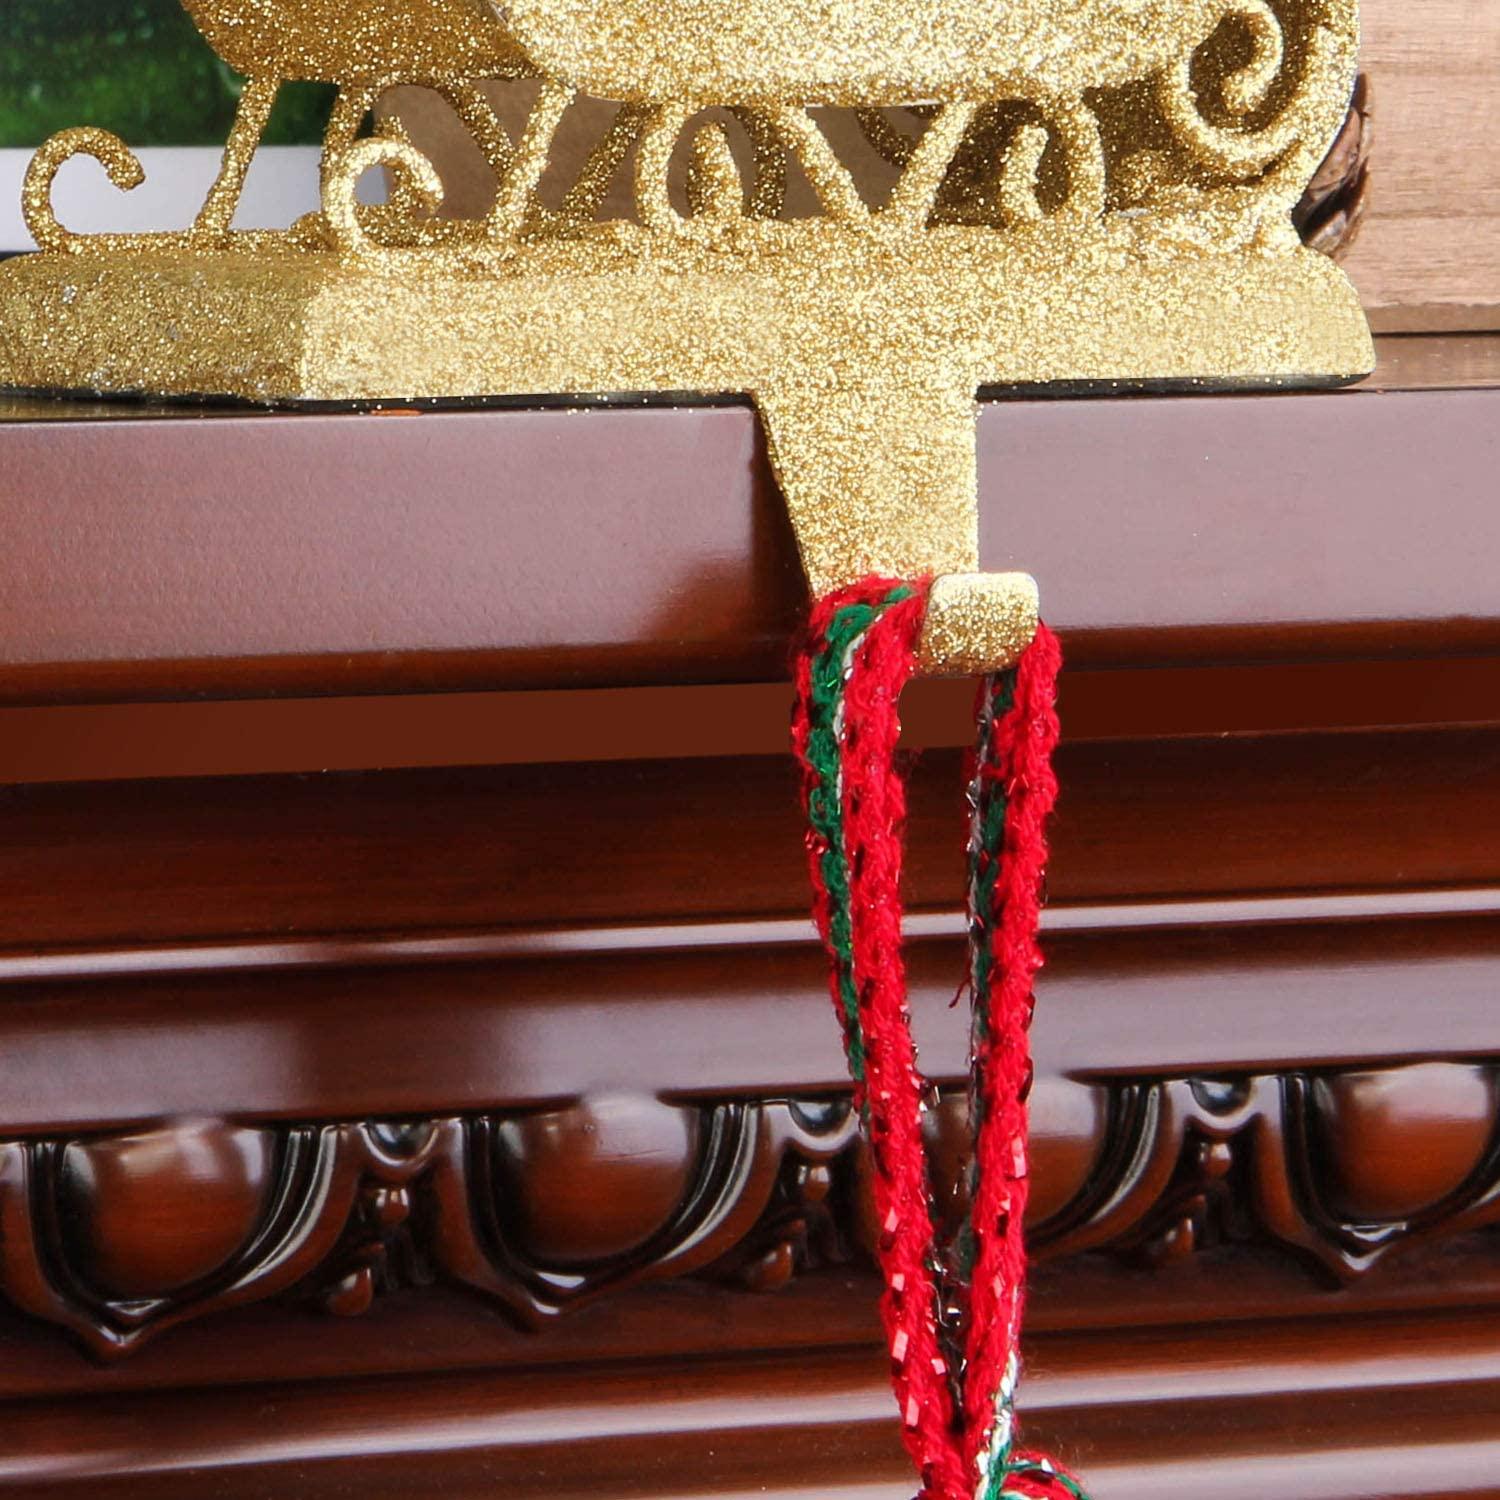 QinYing 6.03 Christmas Pine Tree Bronze Christmas Stocking Holders for Fireplace Mantle Stand Hanger Sturdy Metal Christmas Decorations